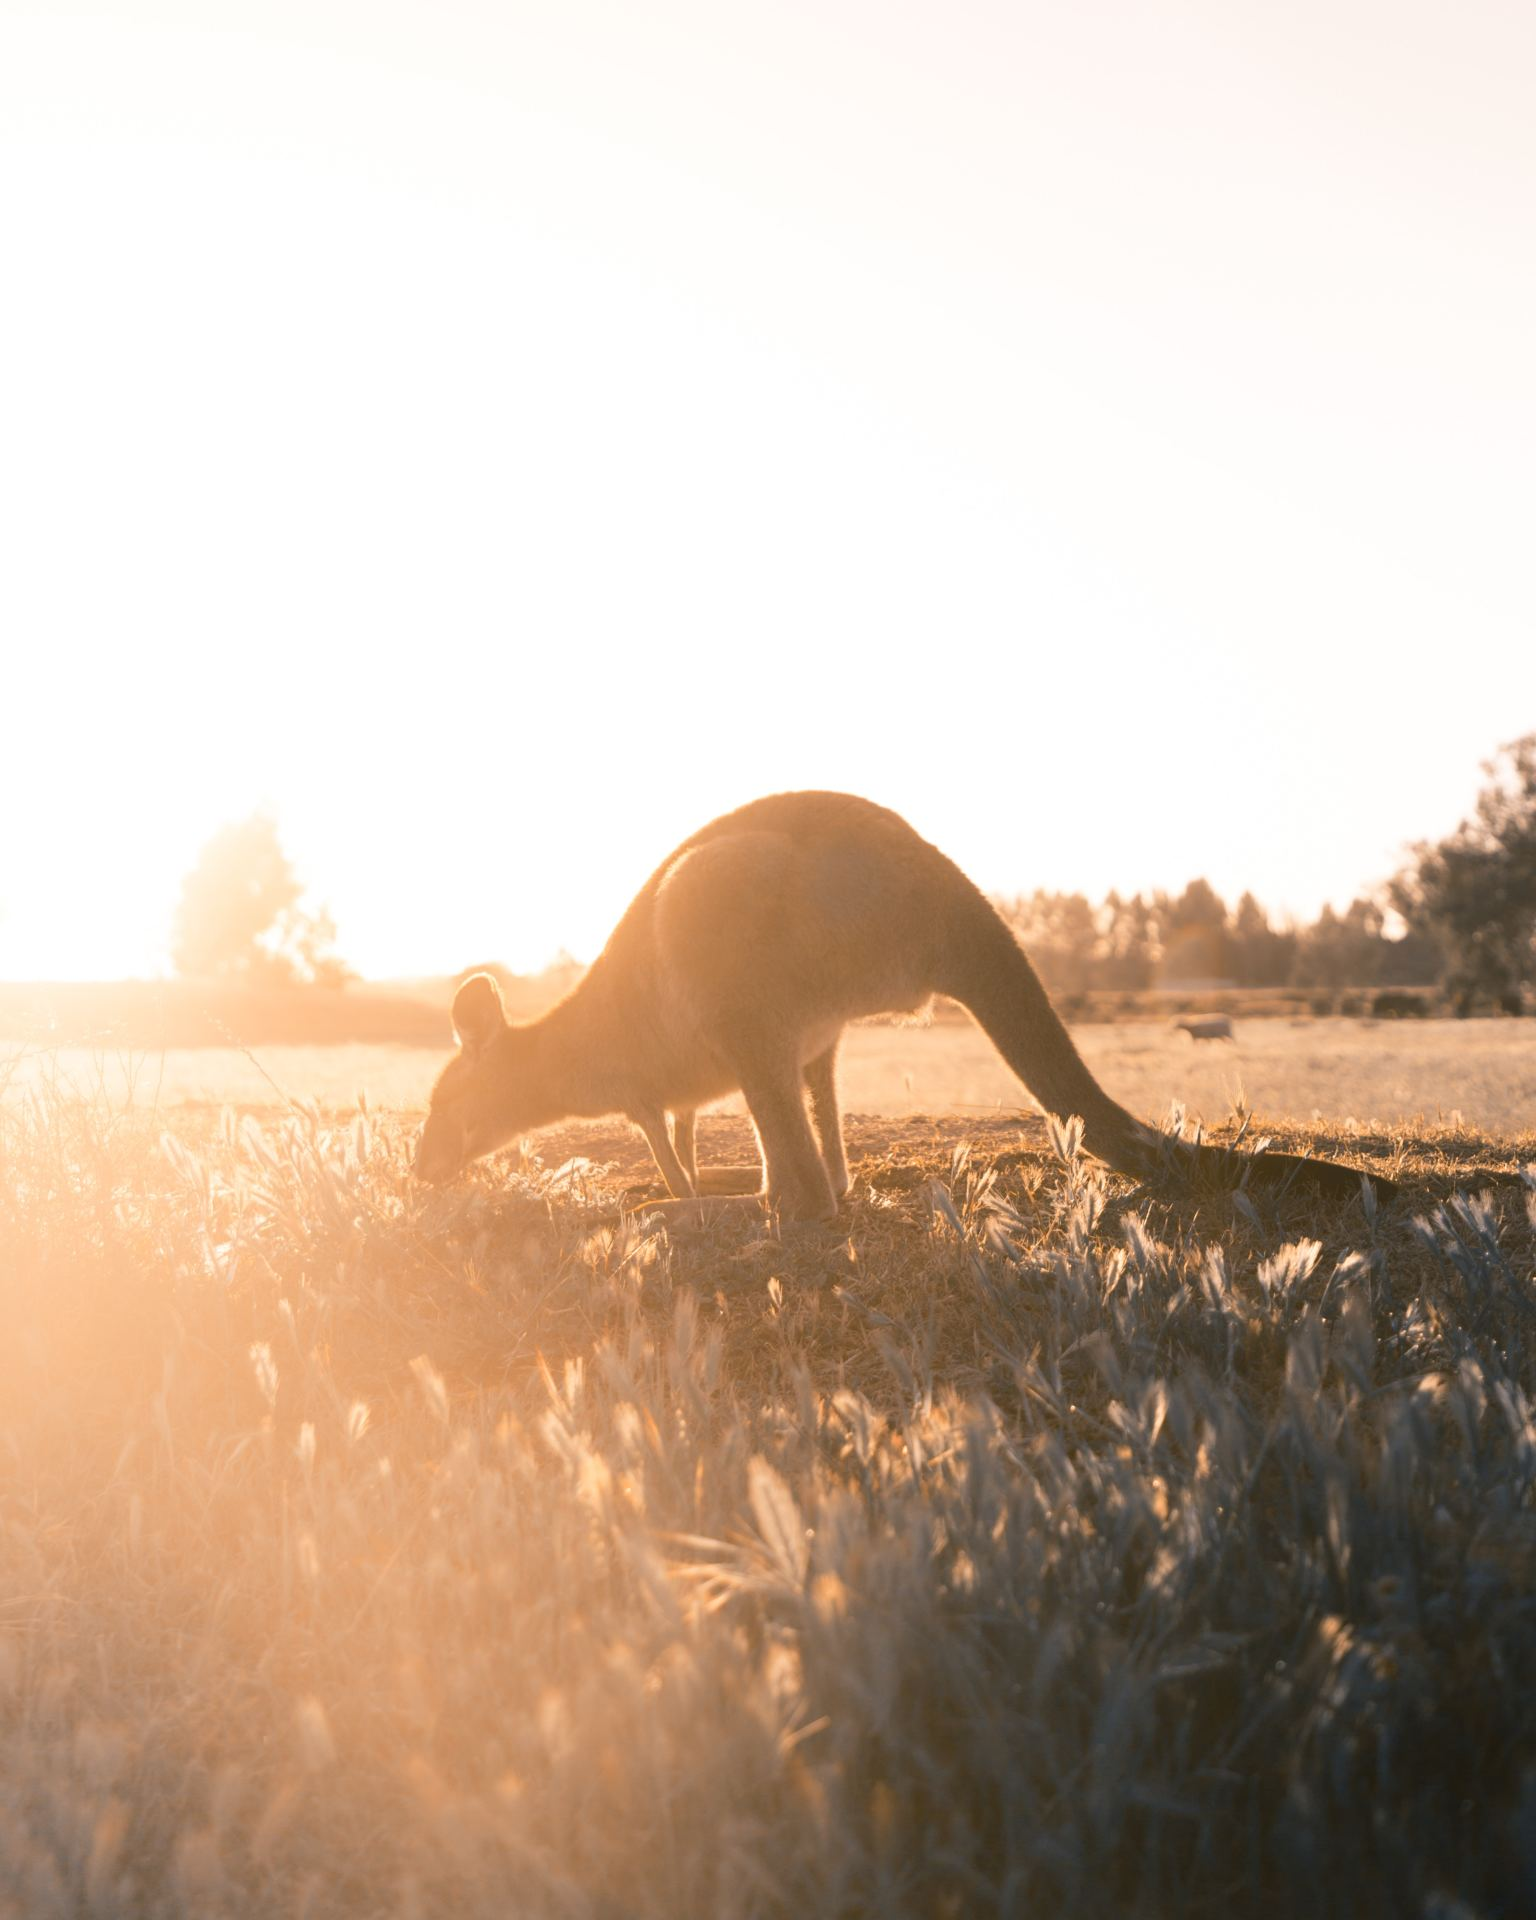 10 Kangaroo Facts That You Never Knew You Needed